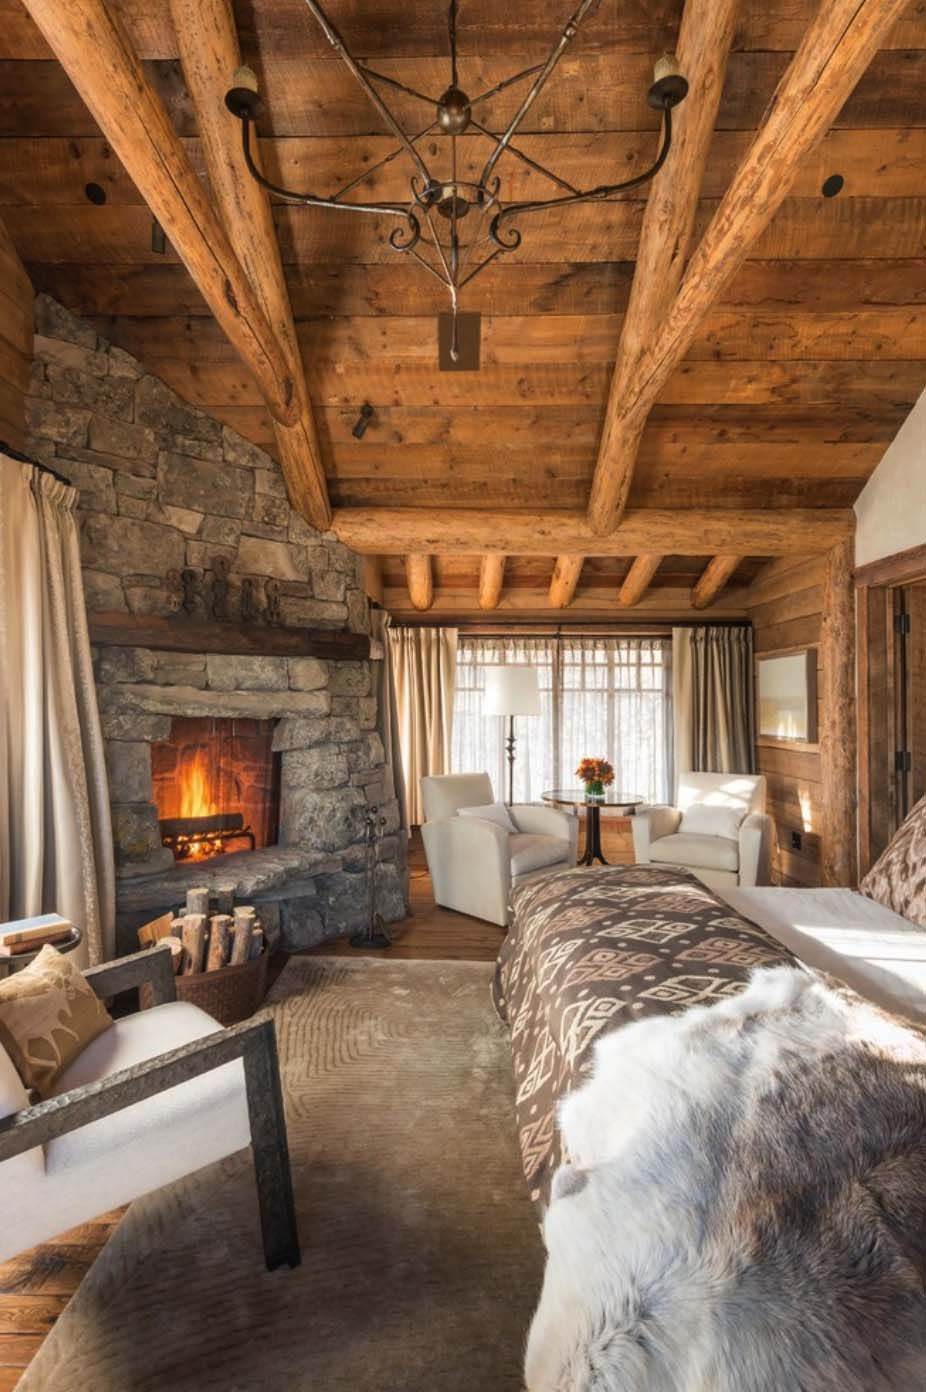 35 Gorgeous Log Cabin Style Bedrooms To Make You Drool With